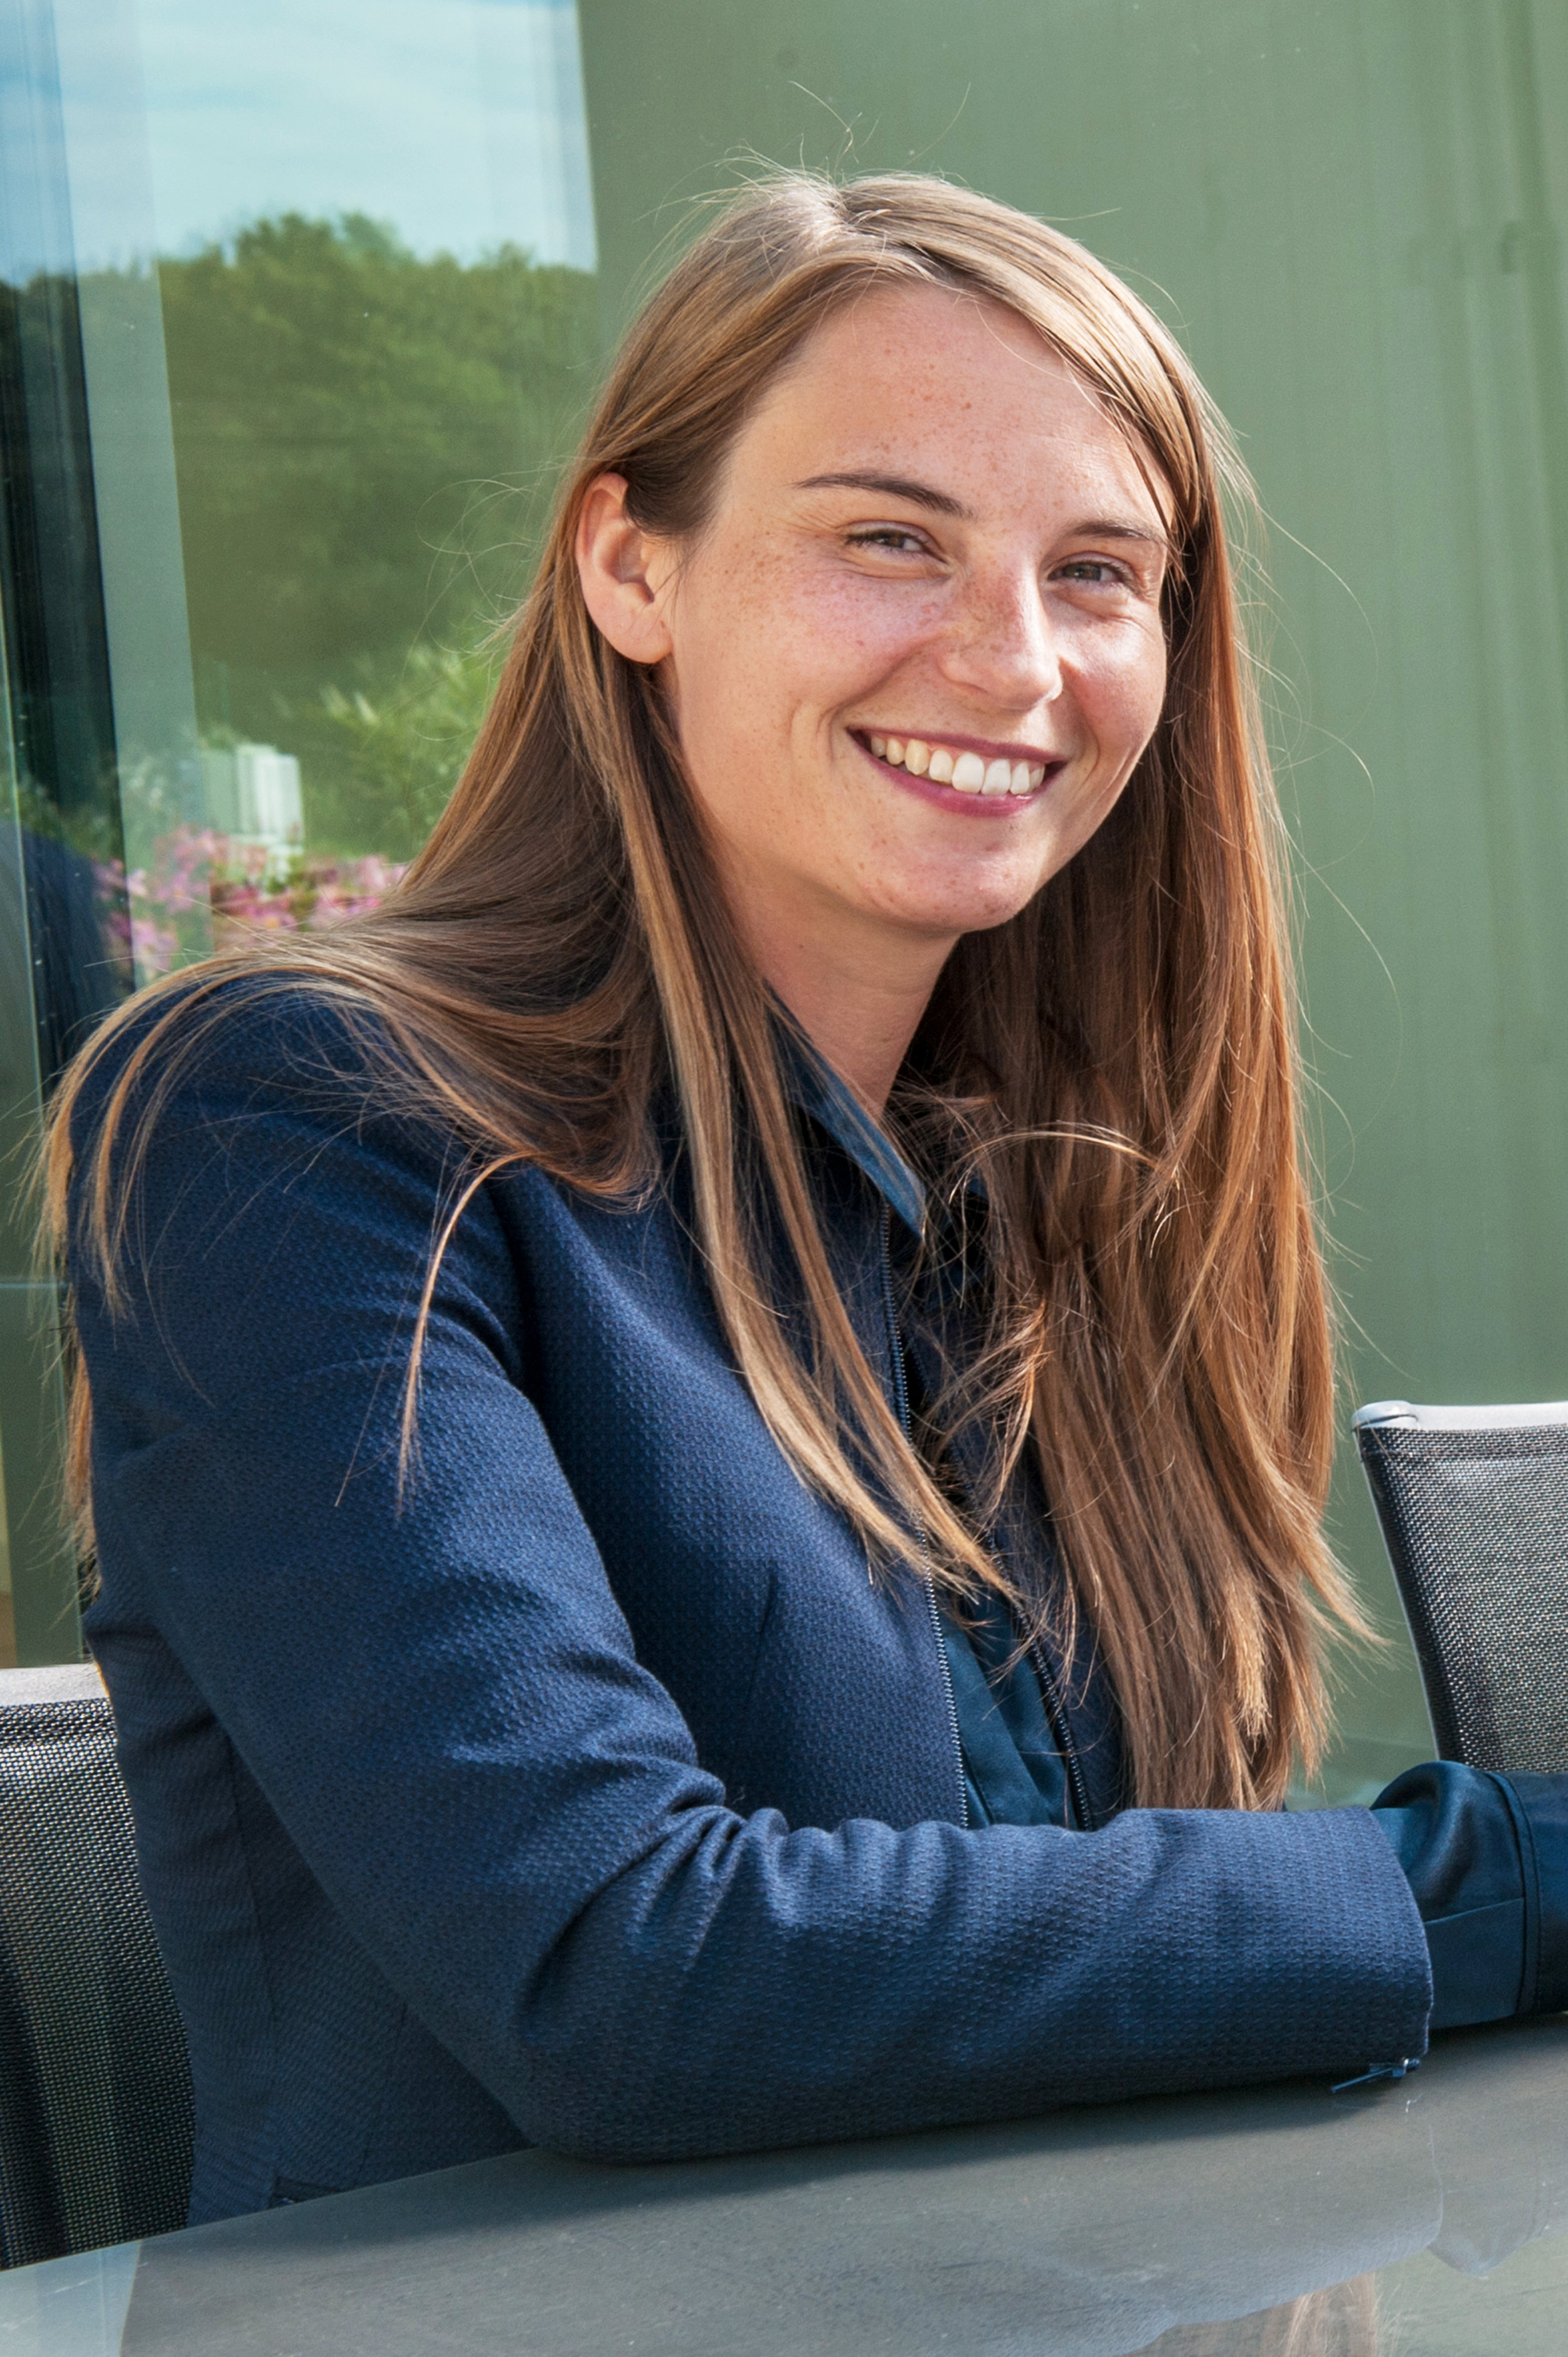 Emma Tamsin - Contact: emma@melisadvocaten.be2008, master in law (University of Ghent)2009, postgraduate degree in maritime sciences (Universities of Ghent and Antwerp)2008, member of the Bruges Bar